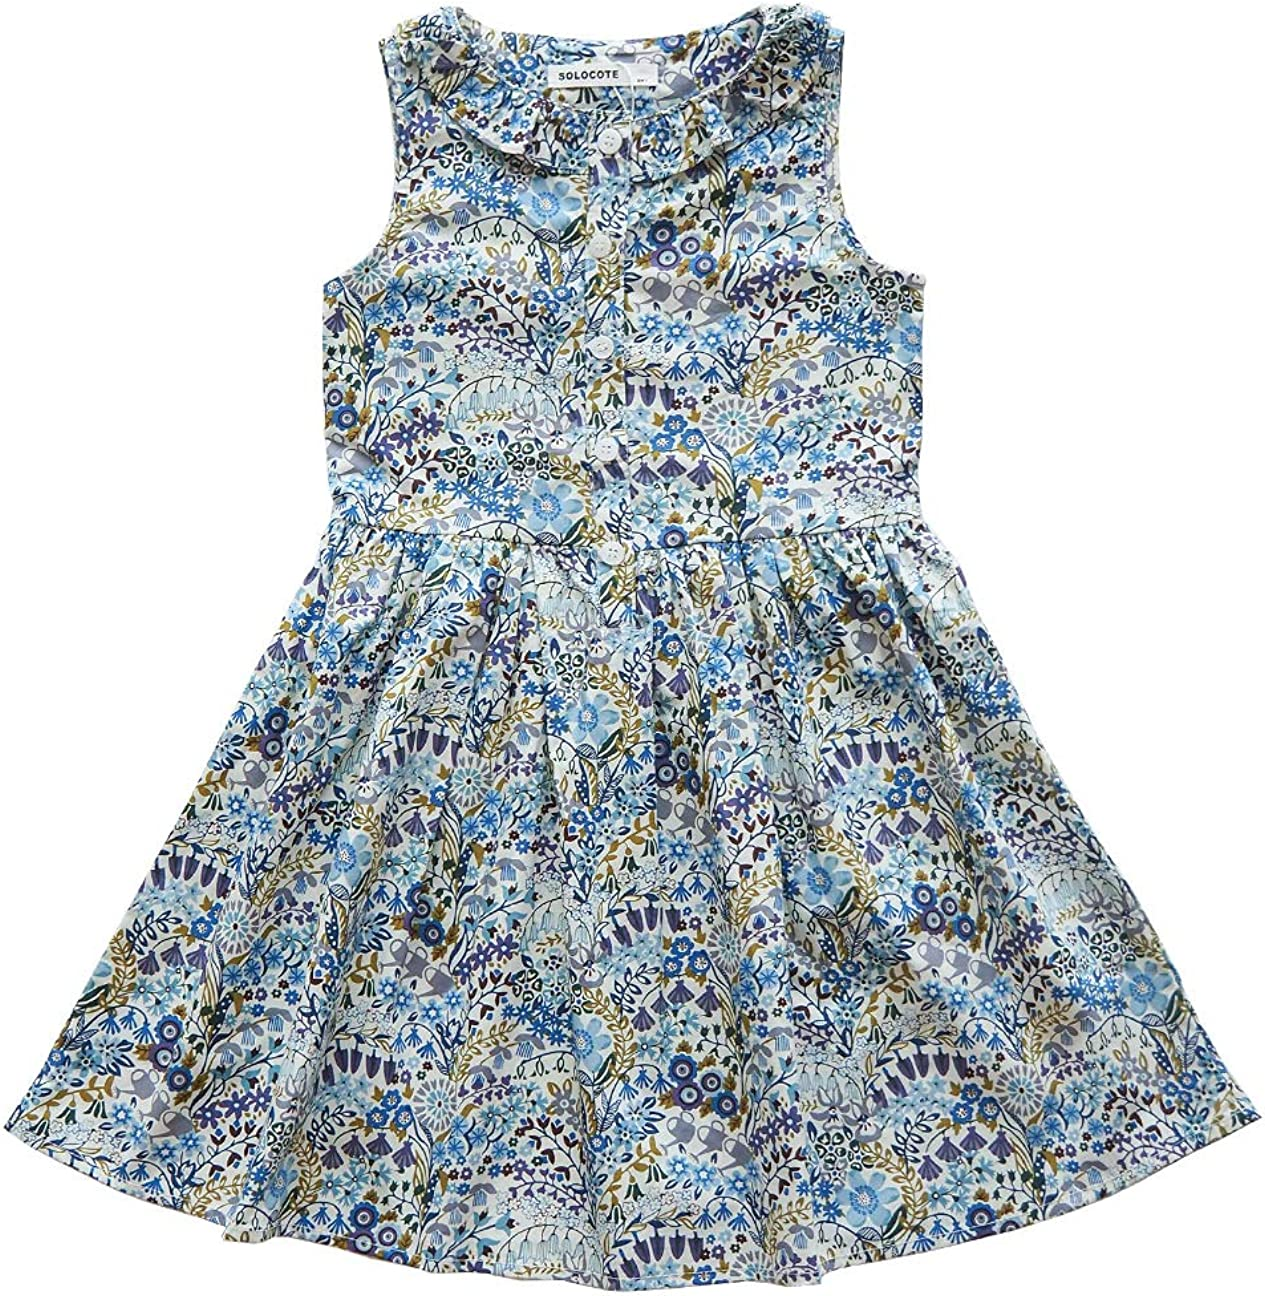 SOLOCOTE Girls Dress Floral Cotton Casual with Ruffle Kids Summer Dresses  Youth Sleeveless Sundress Size 7-7Y